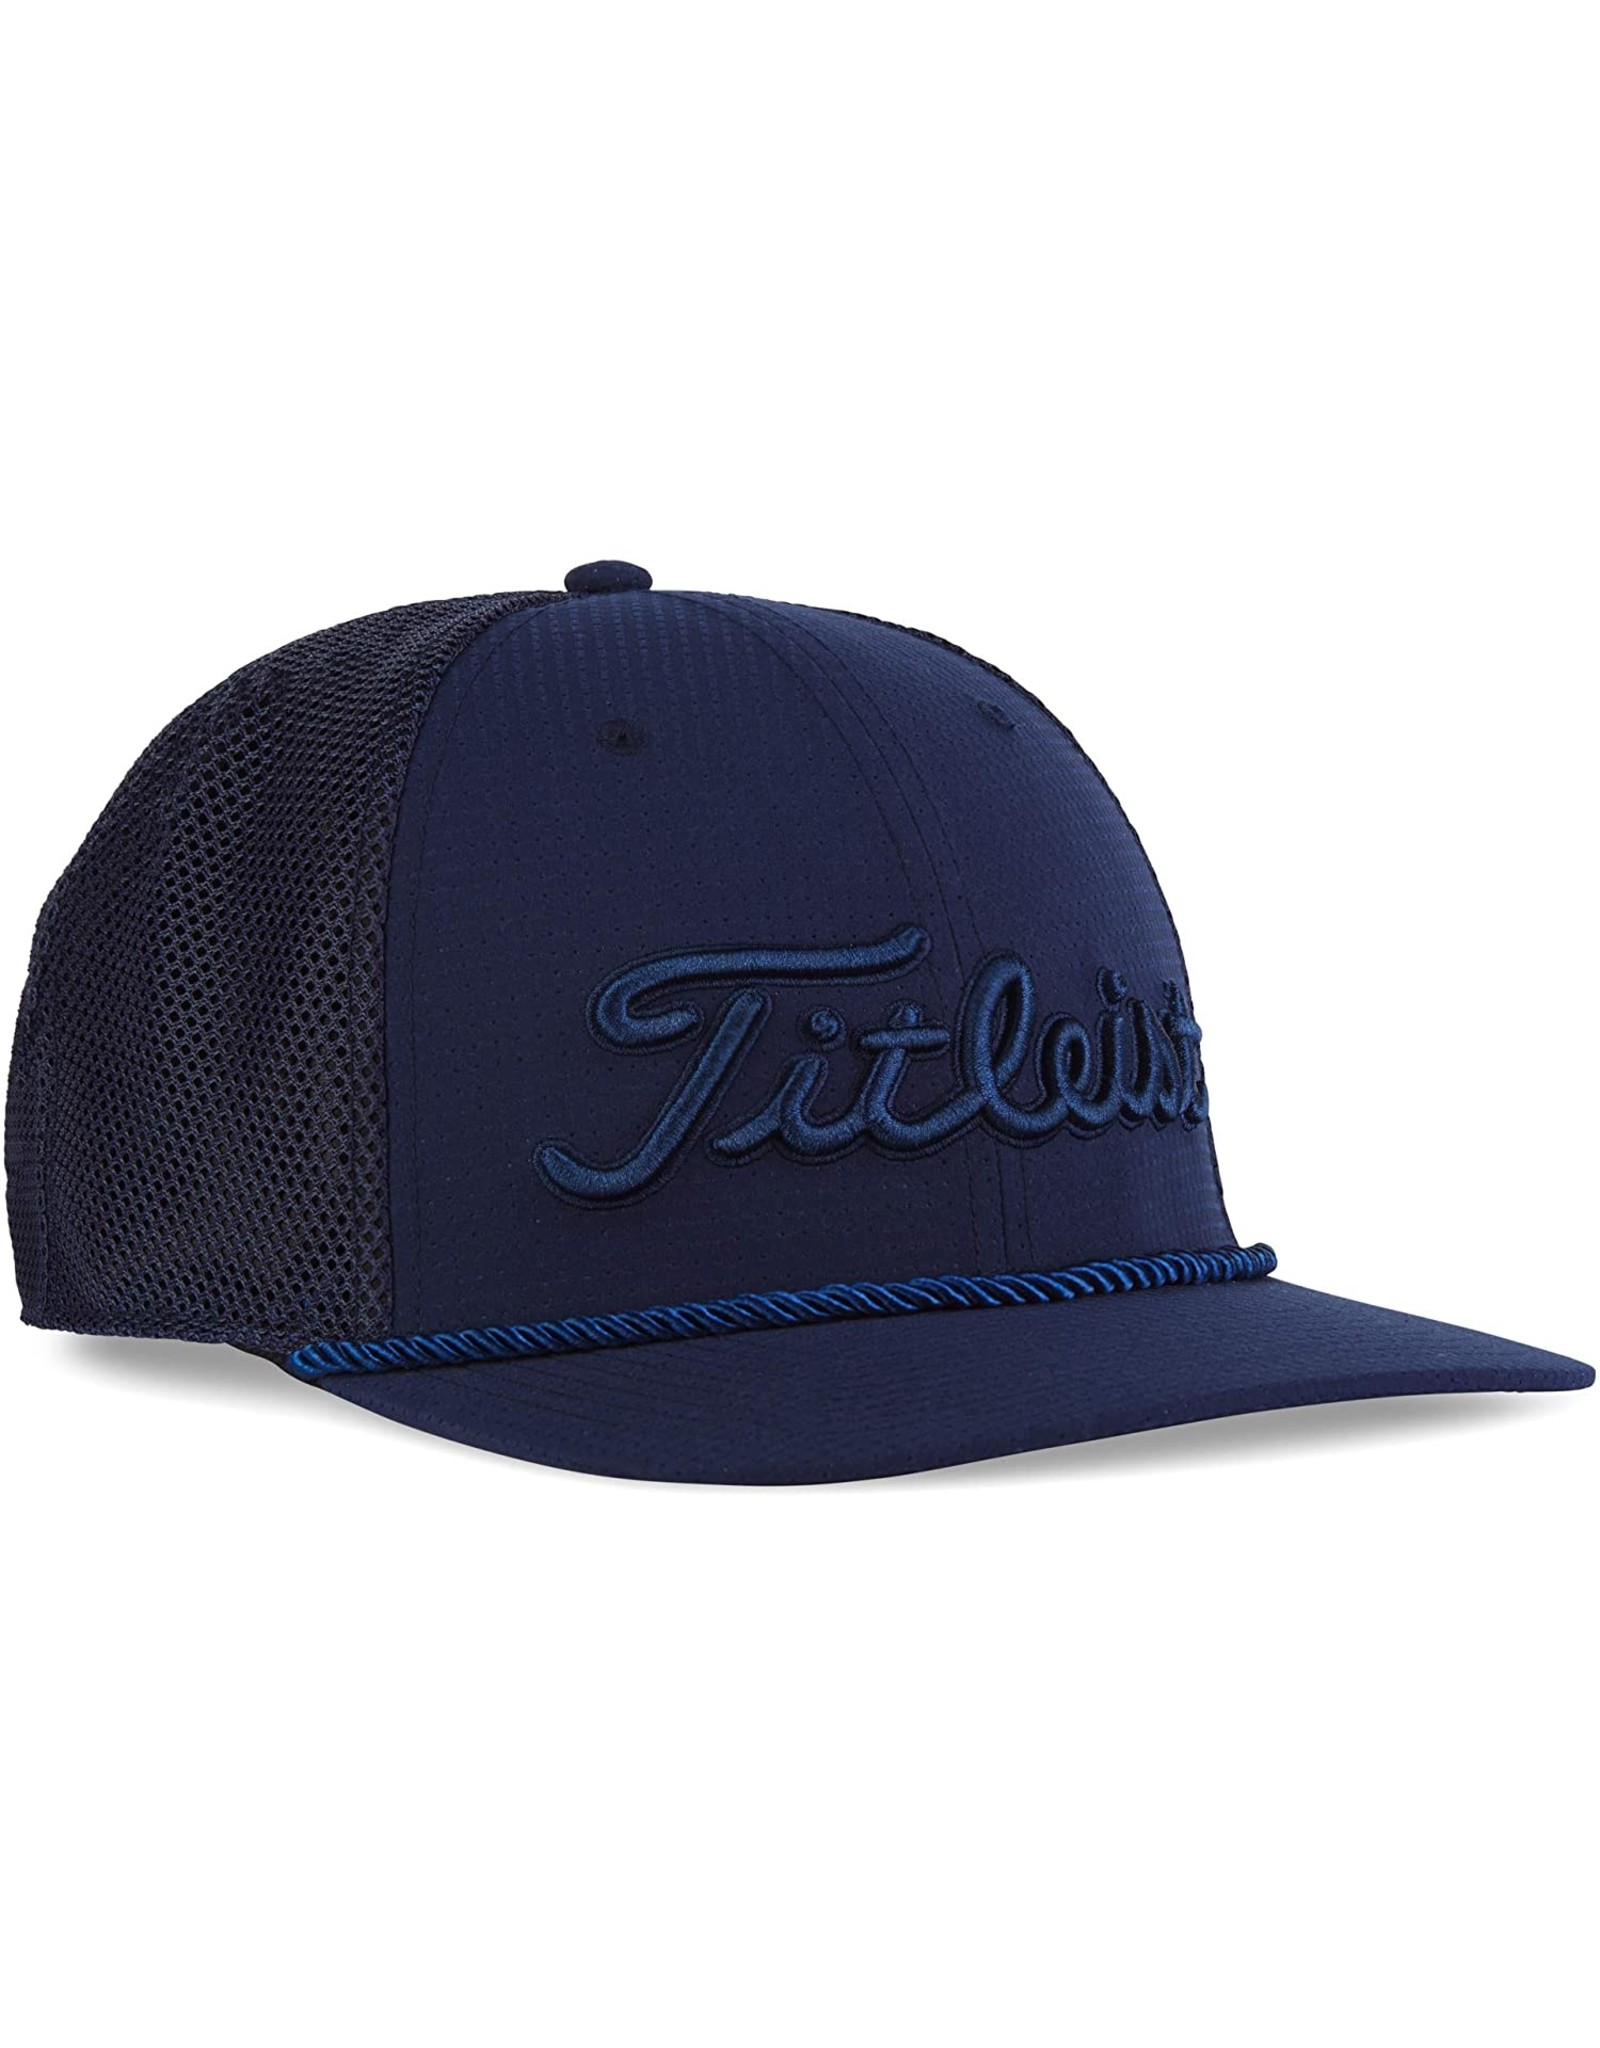 Titleist Titleist Men's West Coast Collection Hat